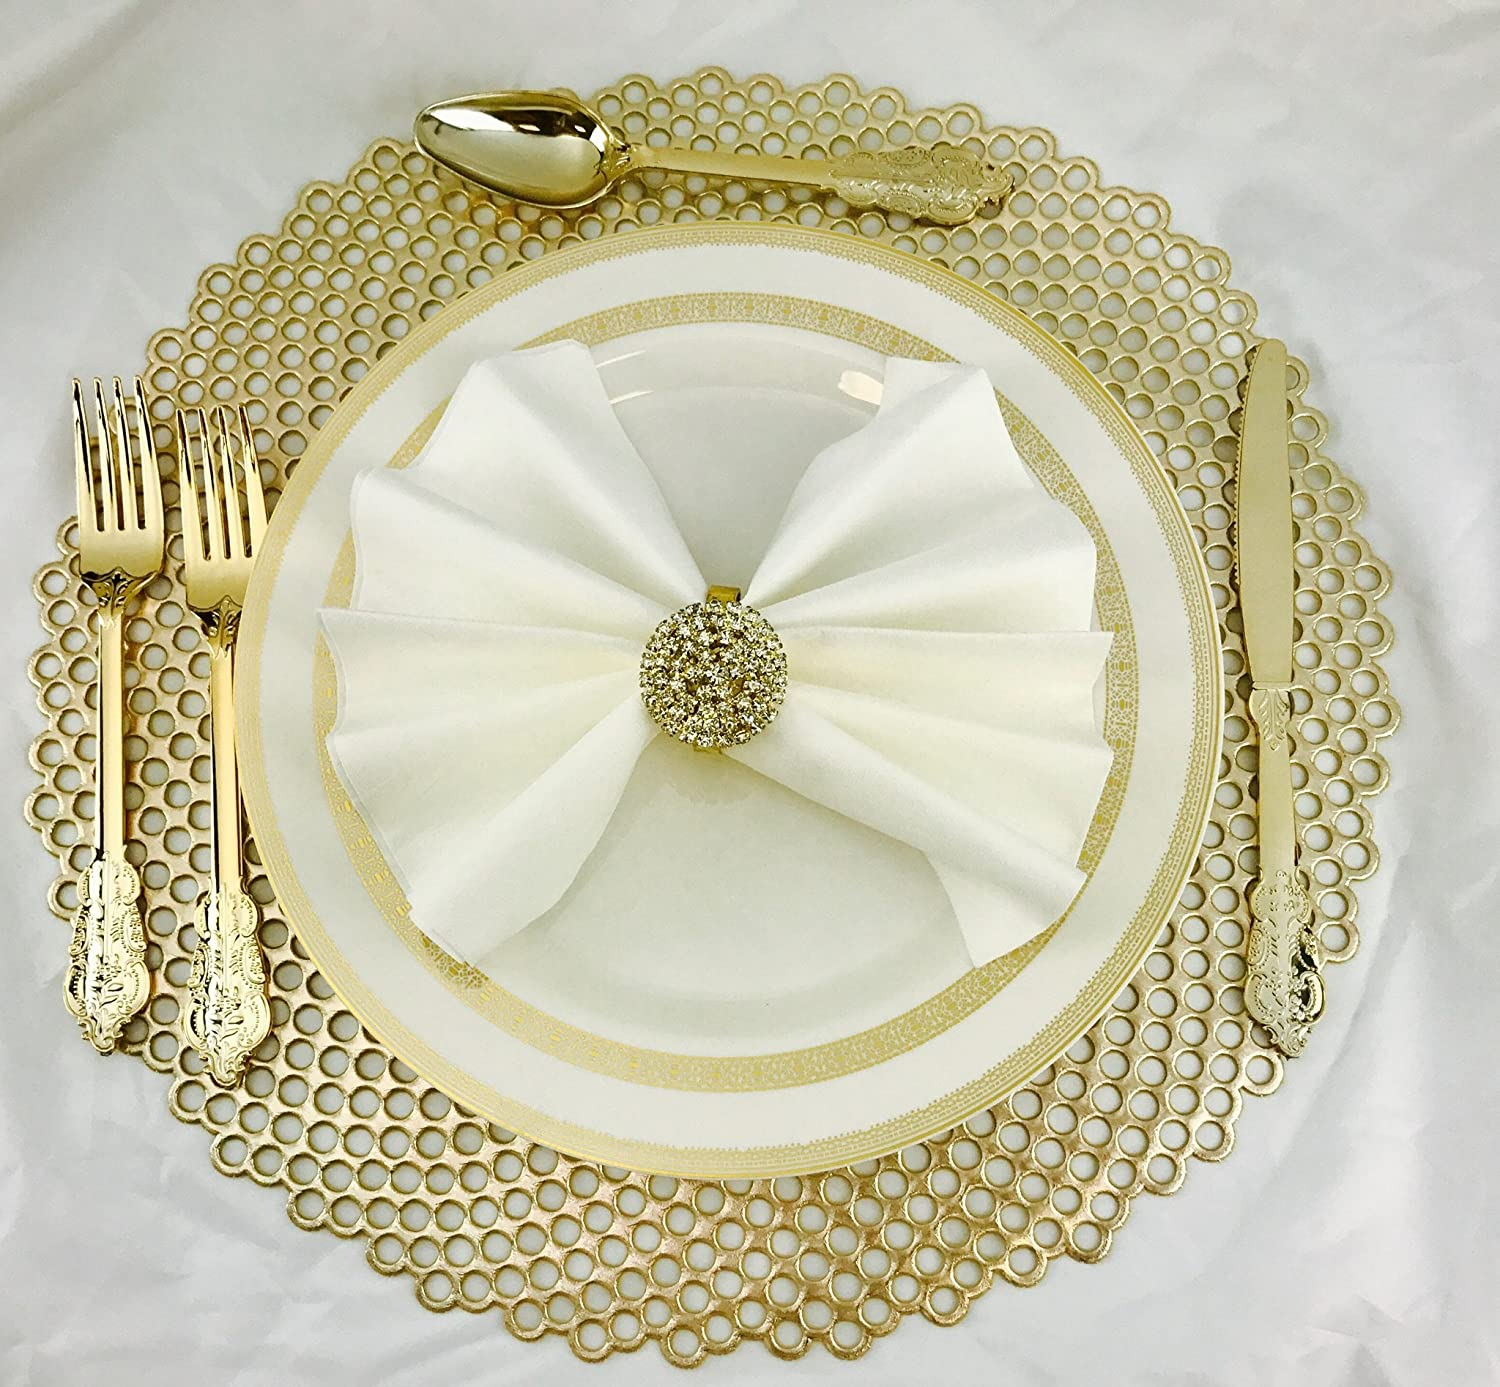 OCCASIONS 40 PACK Pressed Vinyl Metallic Placemats//Charger//Wedding Accent Centerpiece 40 pcs, Round Gold Leaf /… OCCASIONS FINEST PLASTIC TABLEWARE